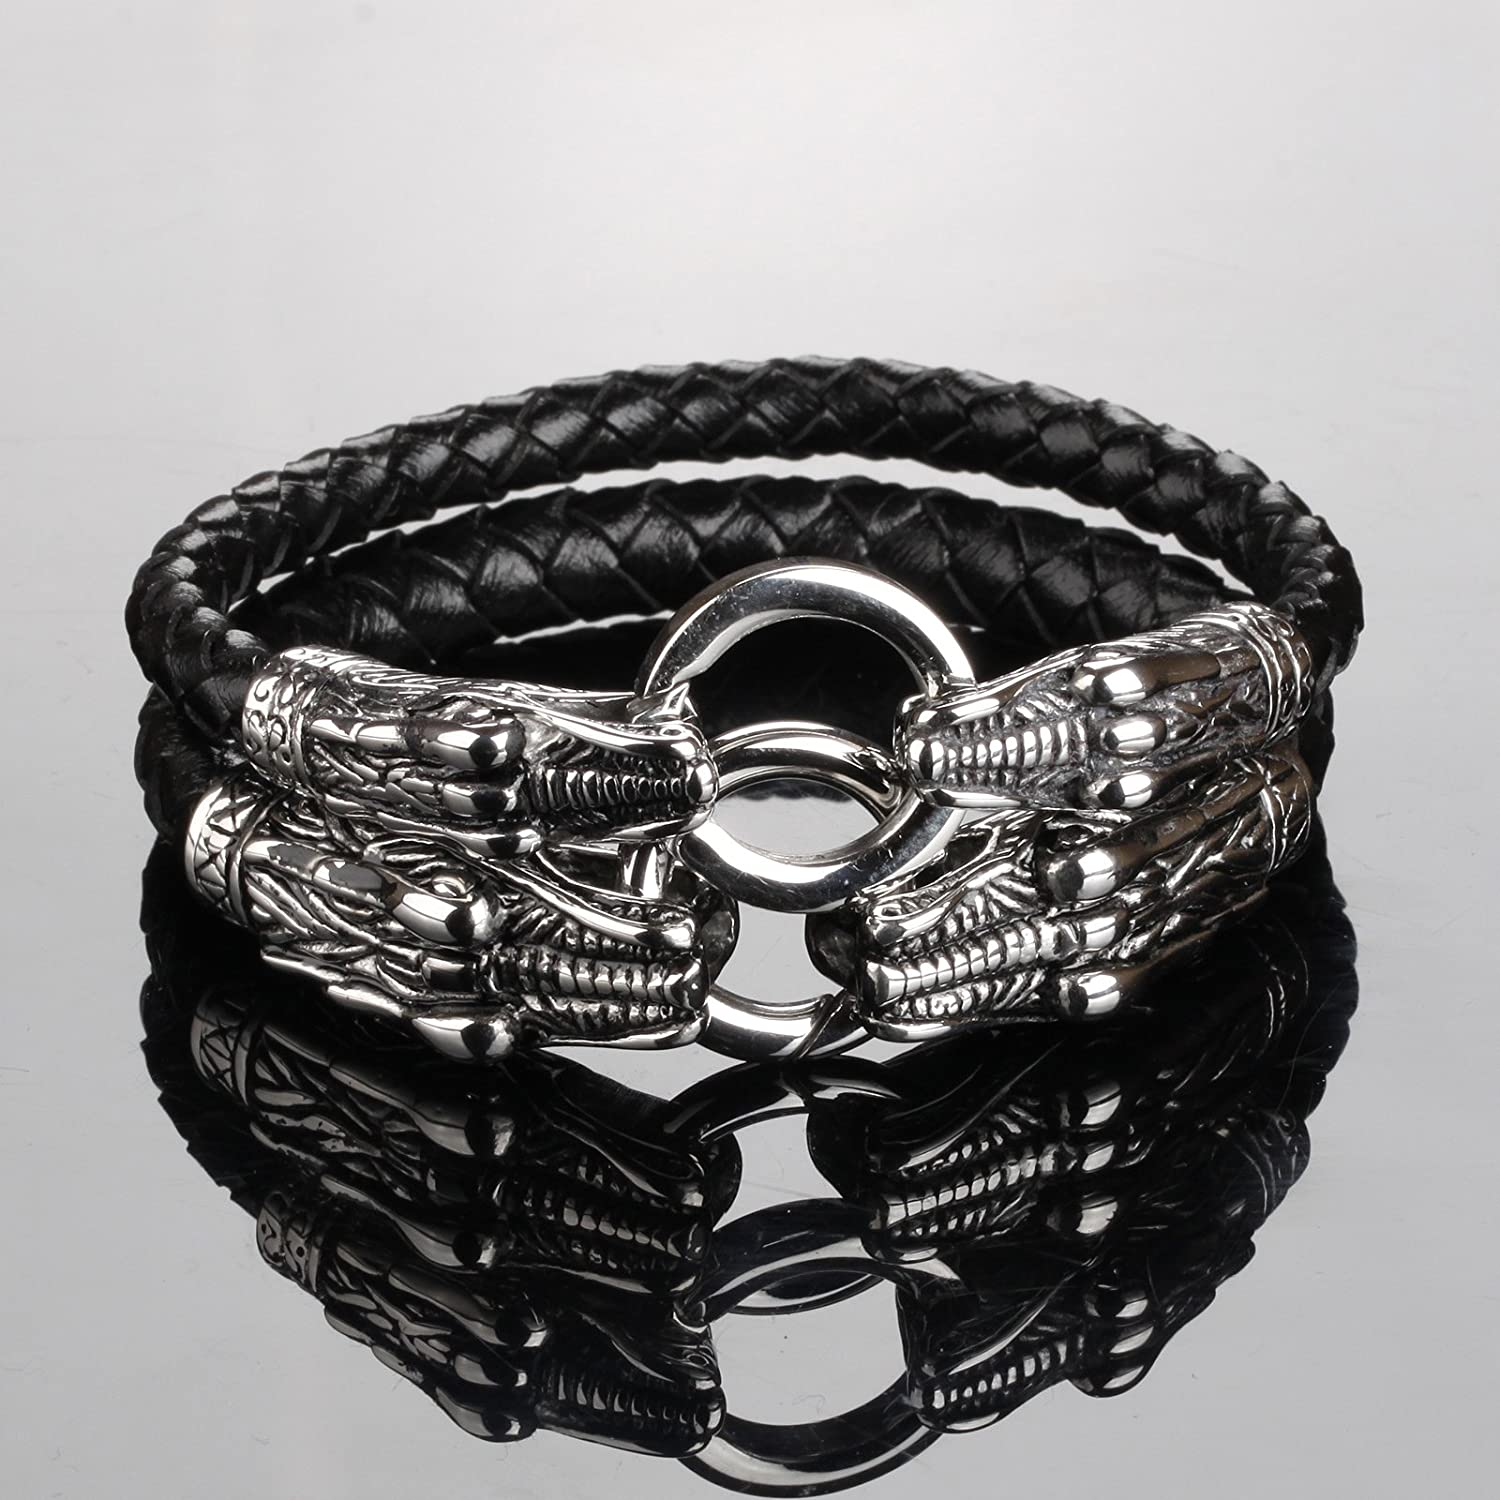 Stainless Steel Double Dragon Head Connect Ring Black Weave Genuine Leather Mens Cuff Bracelet